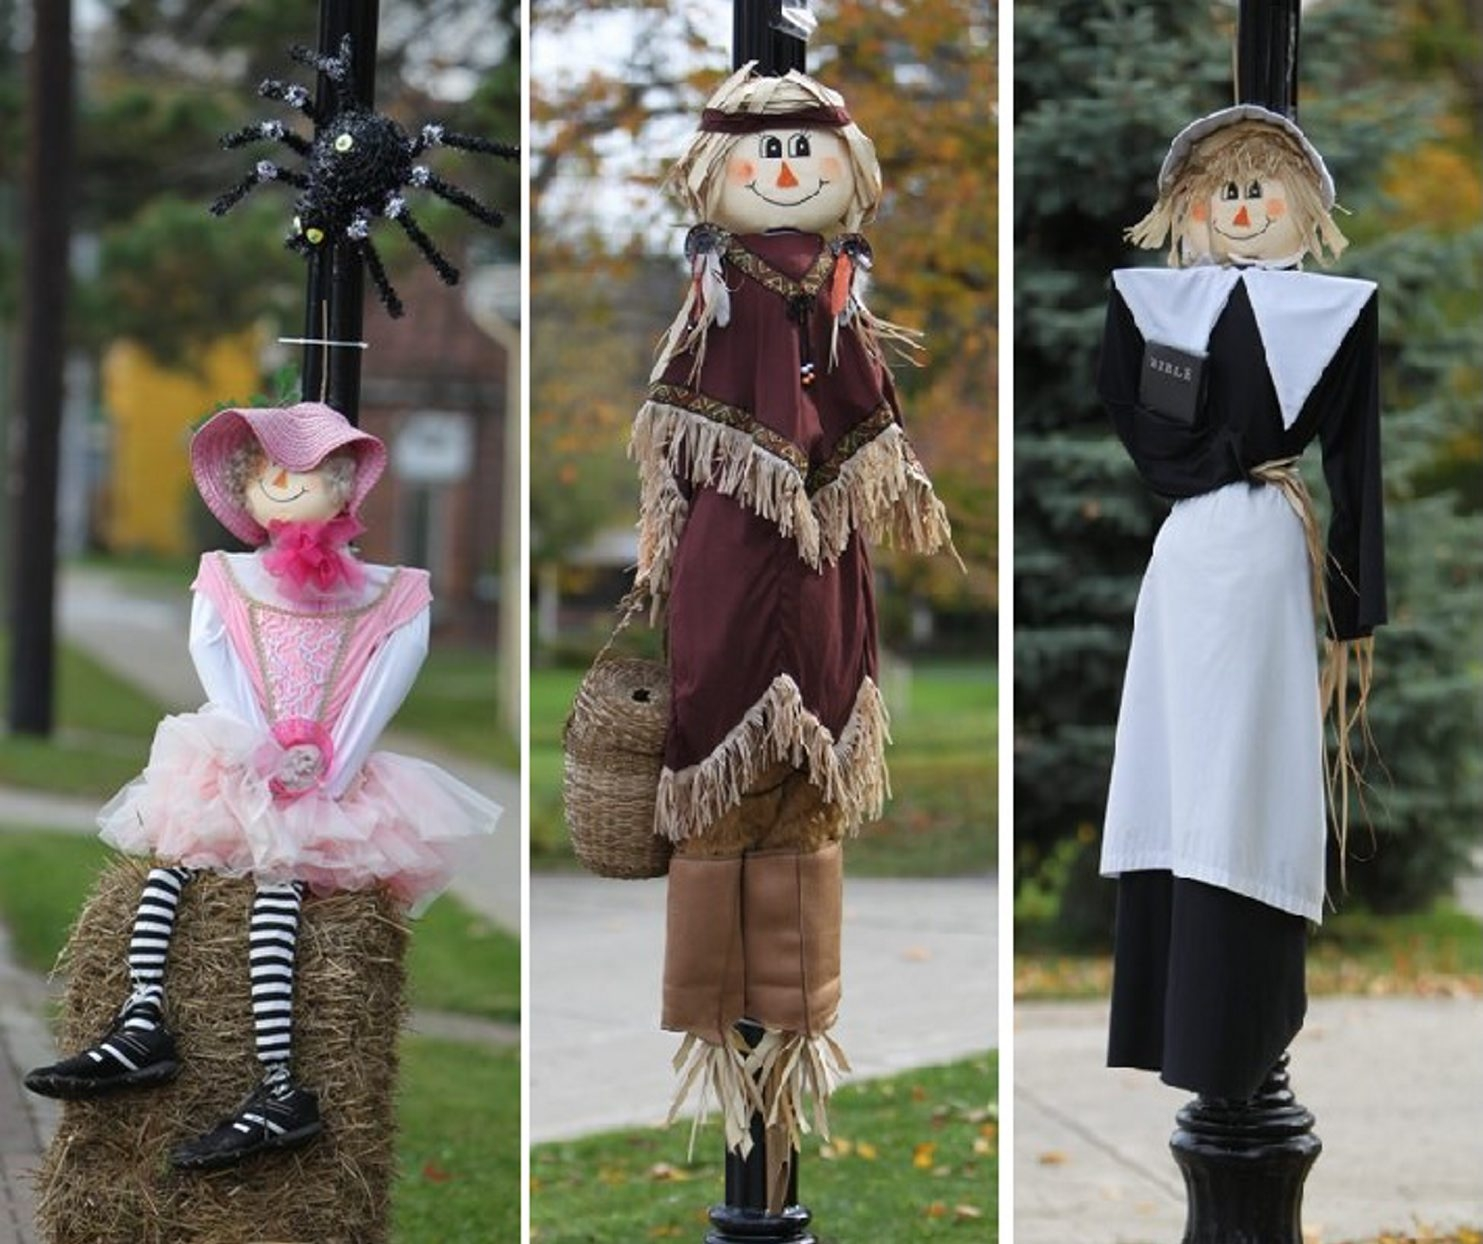 Imaginiative scarecrows, from a Miss Muffett with spider, a Native American princess and a Puritan with Bible, line Main Street in Clarence Center. (Photos by Sharon Cantillon/Buffalo News)